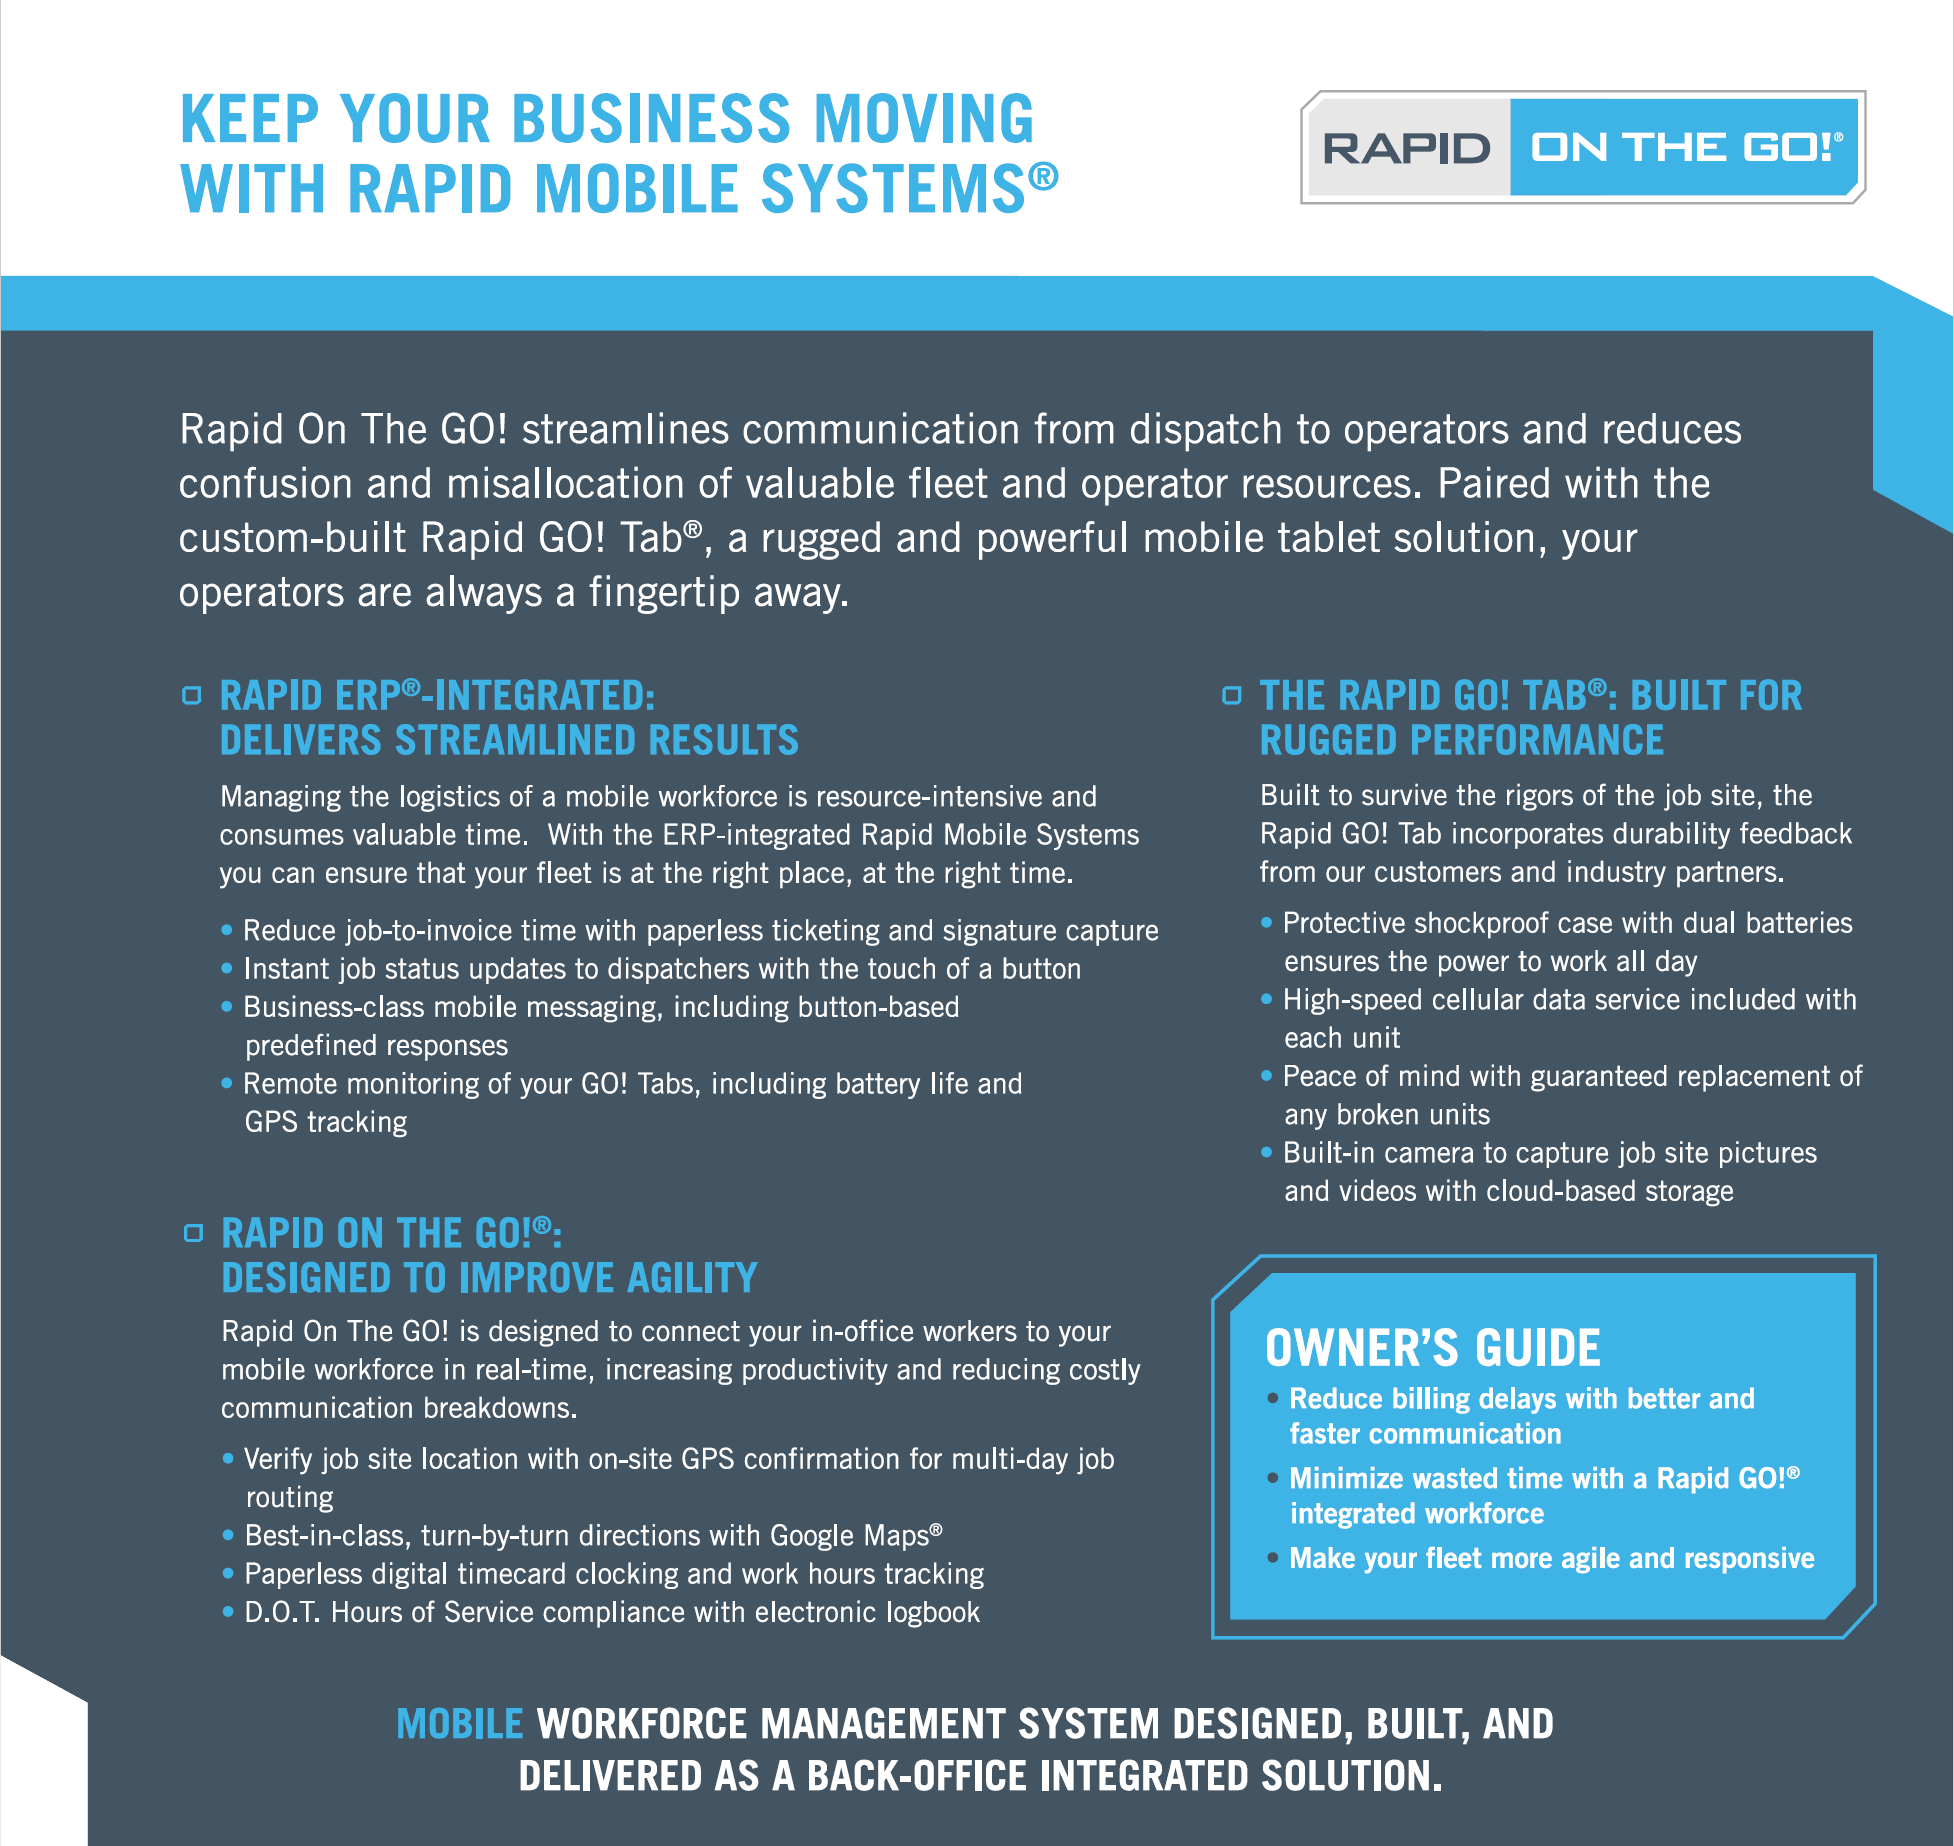 Rapid On The Go! - Keep Your Business Moving